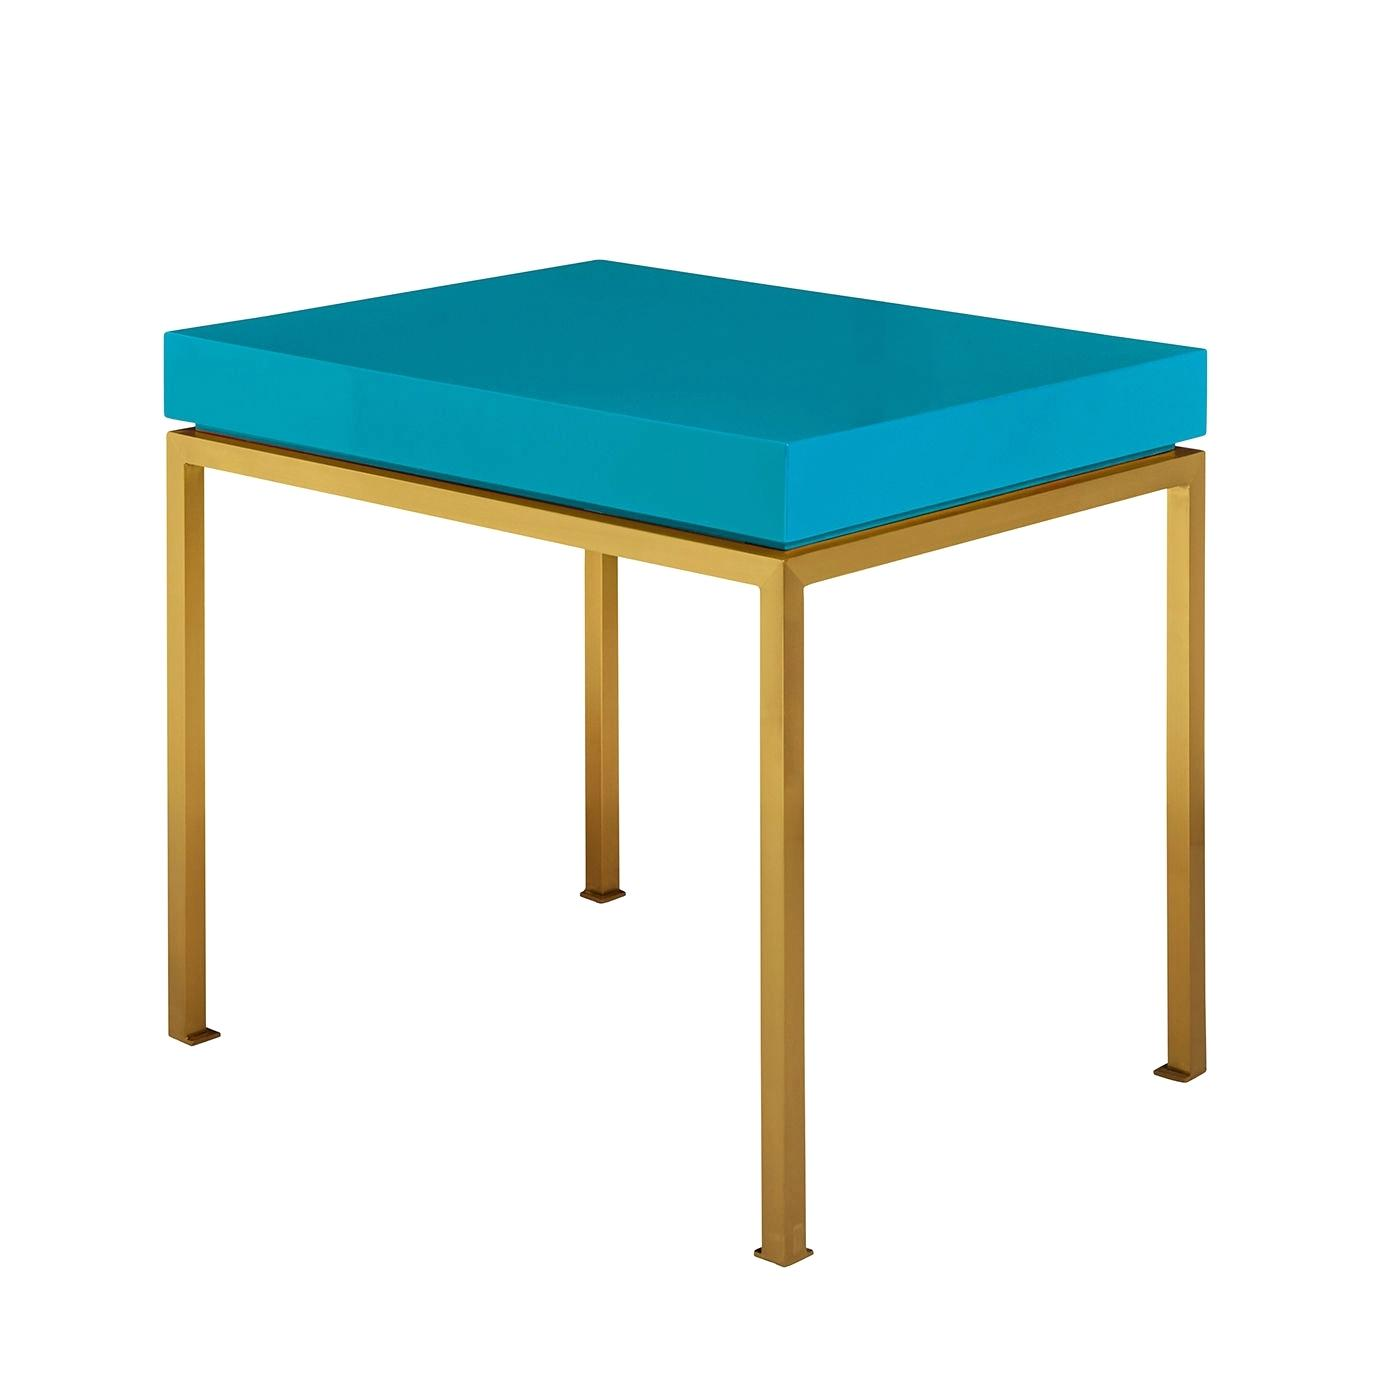 modest tall side table with drawers interior designs ture turquoise modern furniture shelf outdoor accent farmhouse rafferty end ashley small storage bathroom sets pine mint green